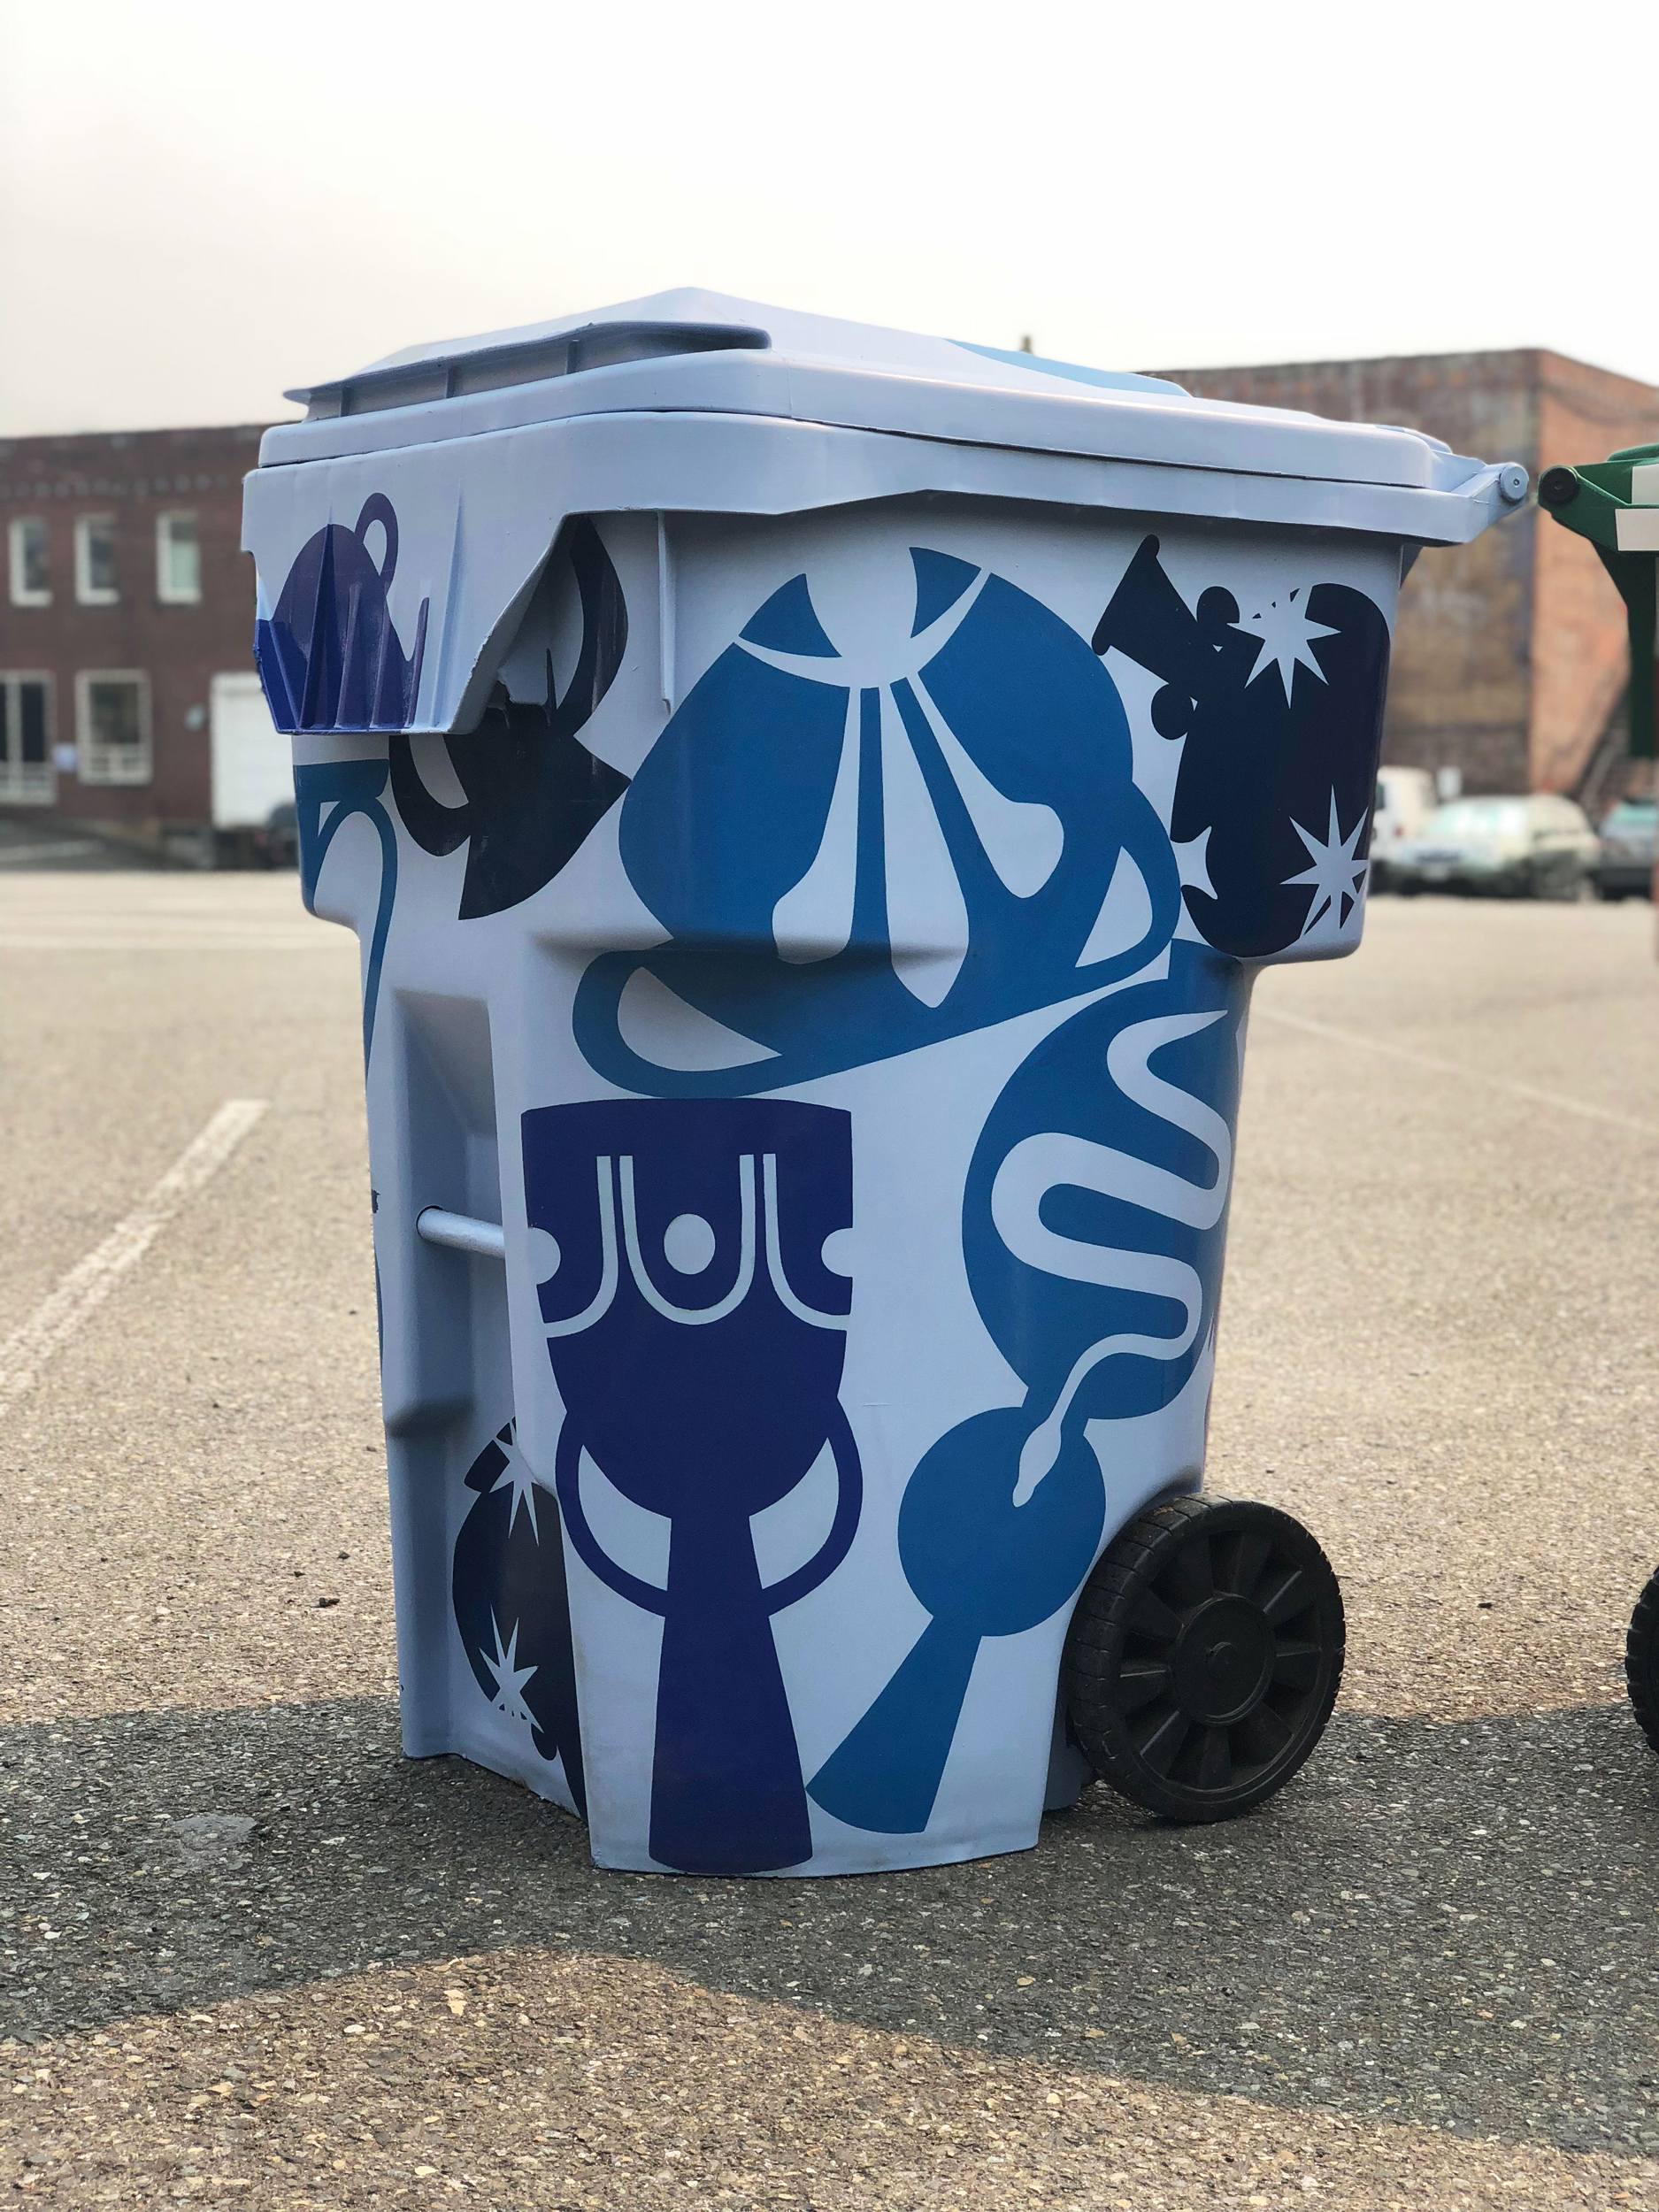 Seattle Public Utilities recycling bin artist pilot program design, partnership with Urban Artworks.